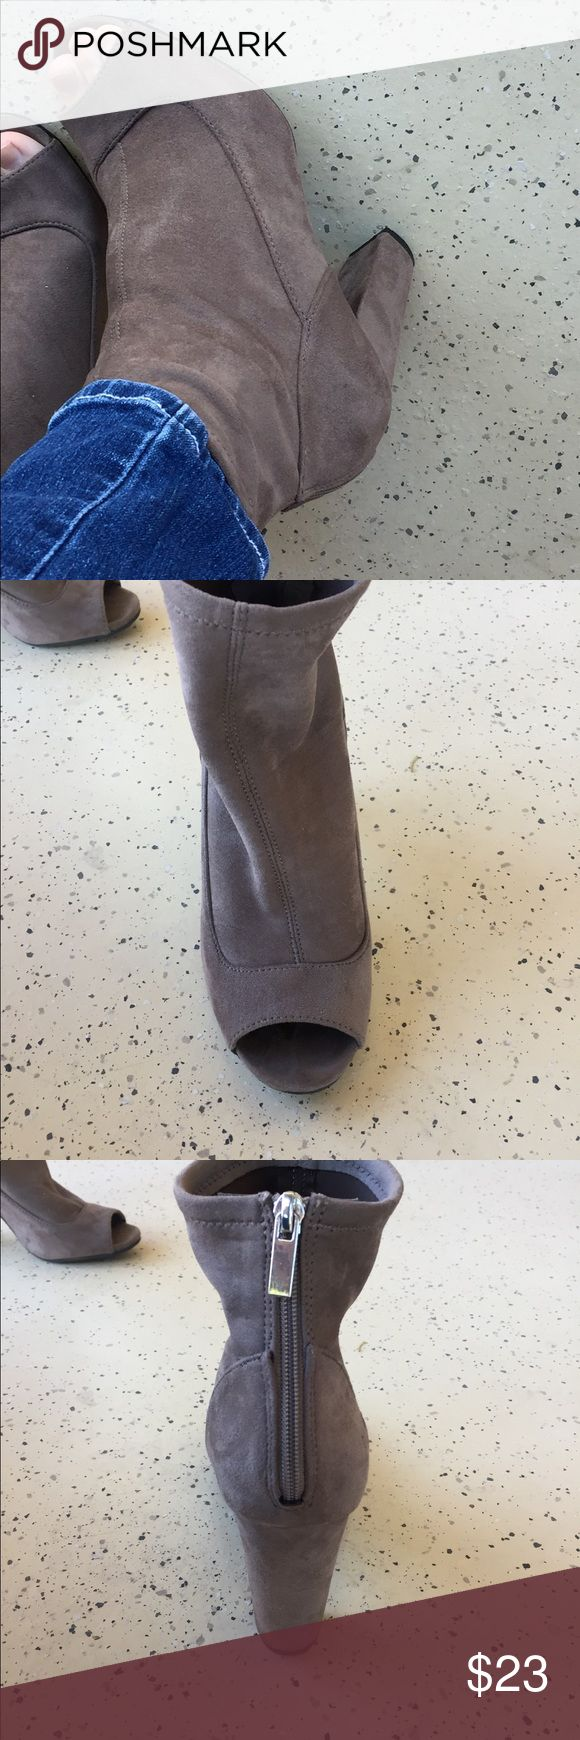 Open toe heel HOW CUTE ARE THEEEESE???? Super cute, I say. Size 8. Fits true to size! Soft suede material , grey color. Open toe, zip up in the back. Only worn 3 times!!! BAMBOO Shoes Ankle Boots & Booties